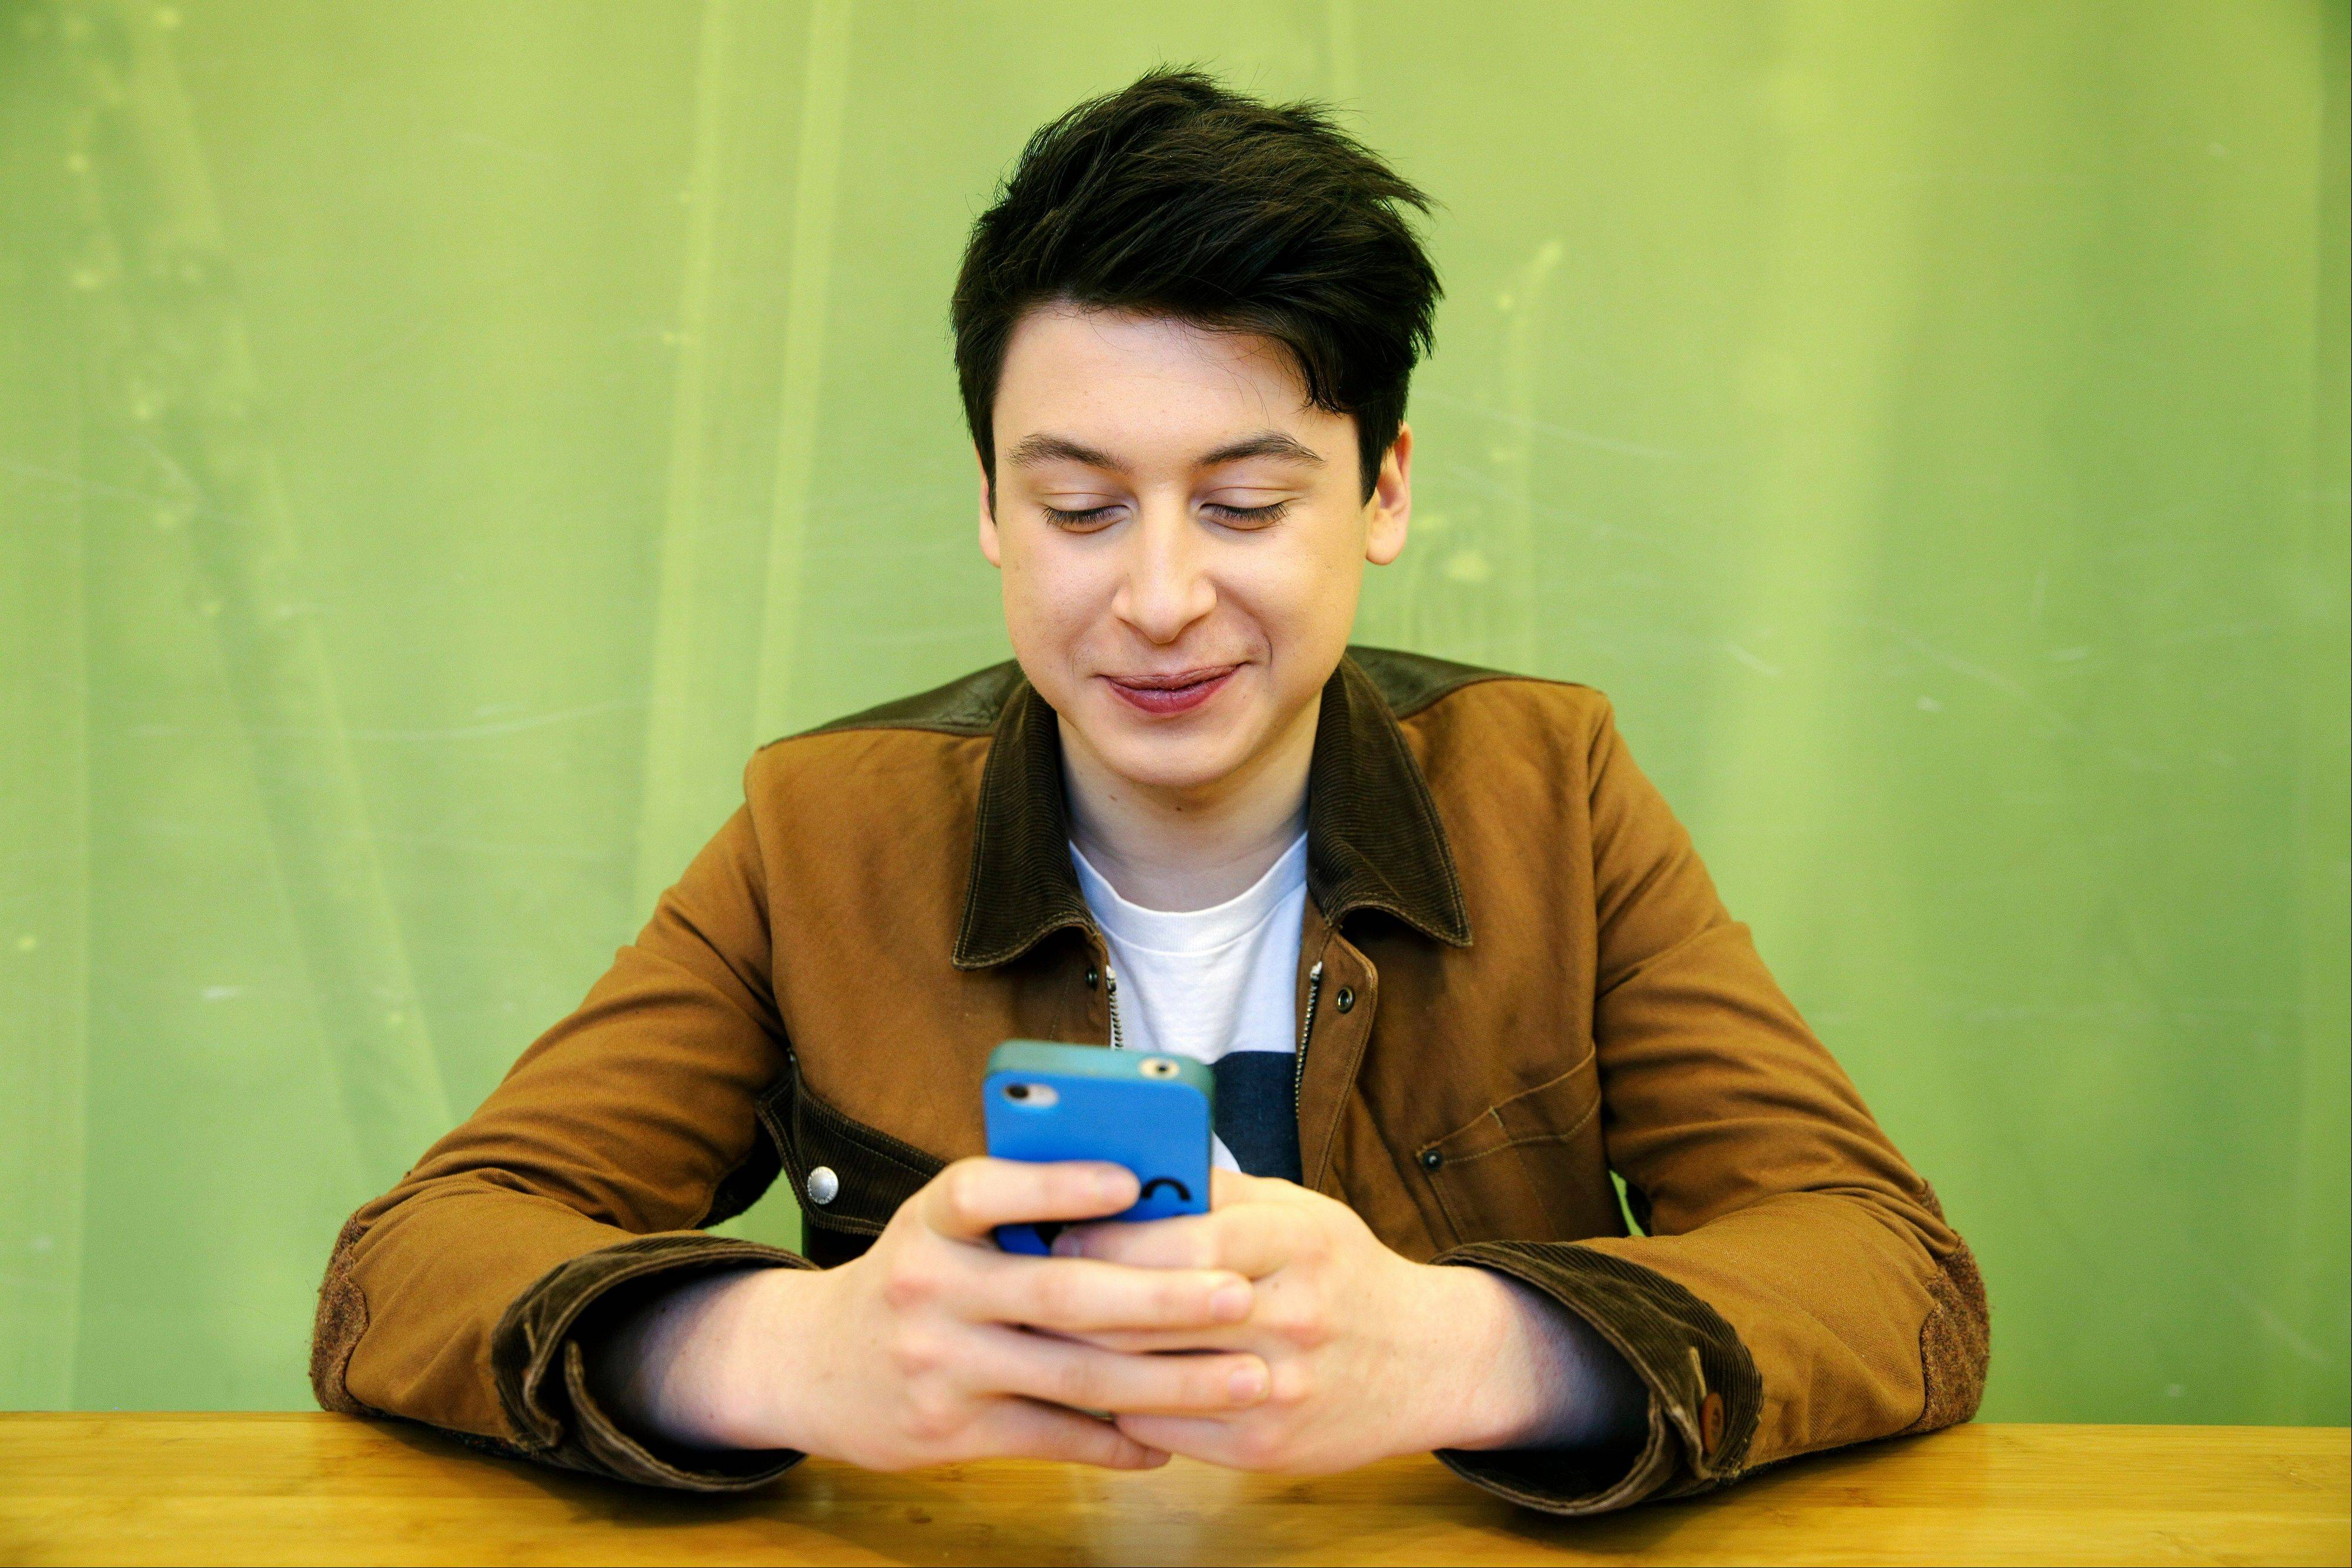 Yahoo! bought the Summly app from 17-year-old Nick D�Aloisio for $30 million.